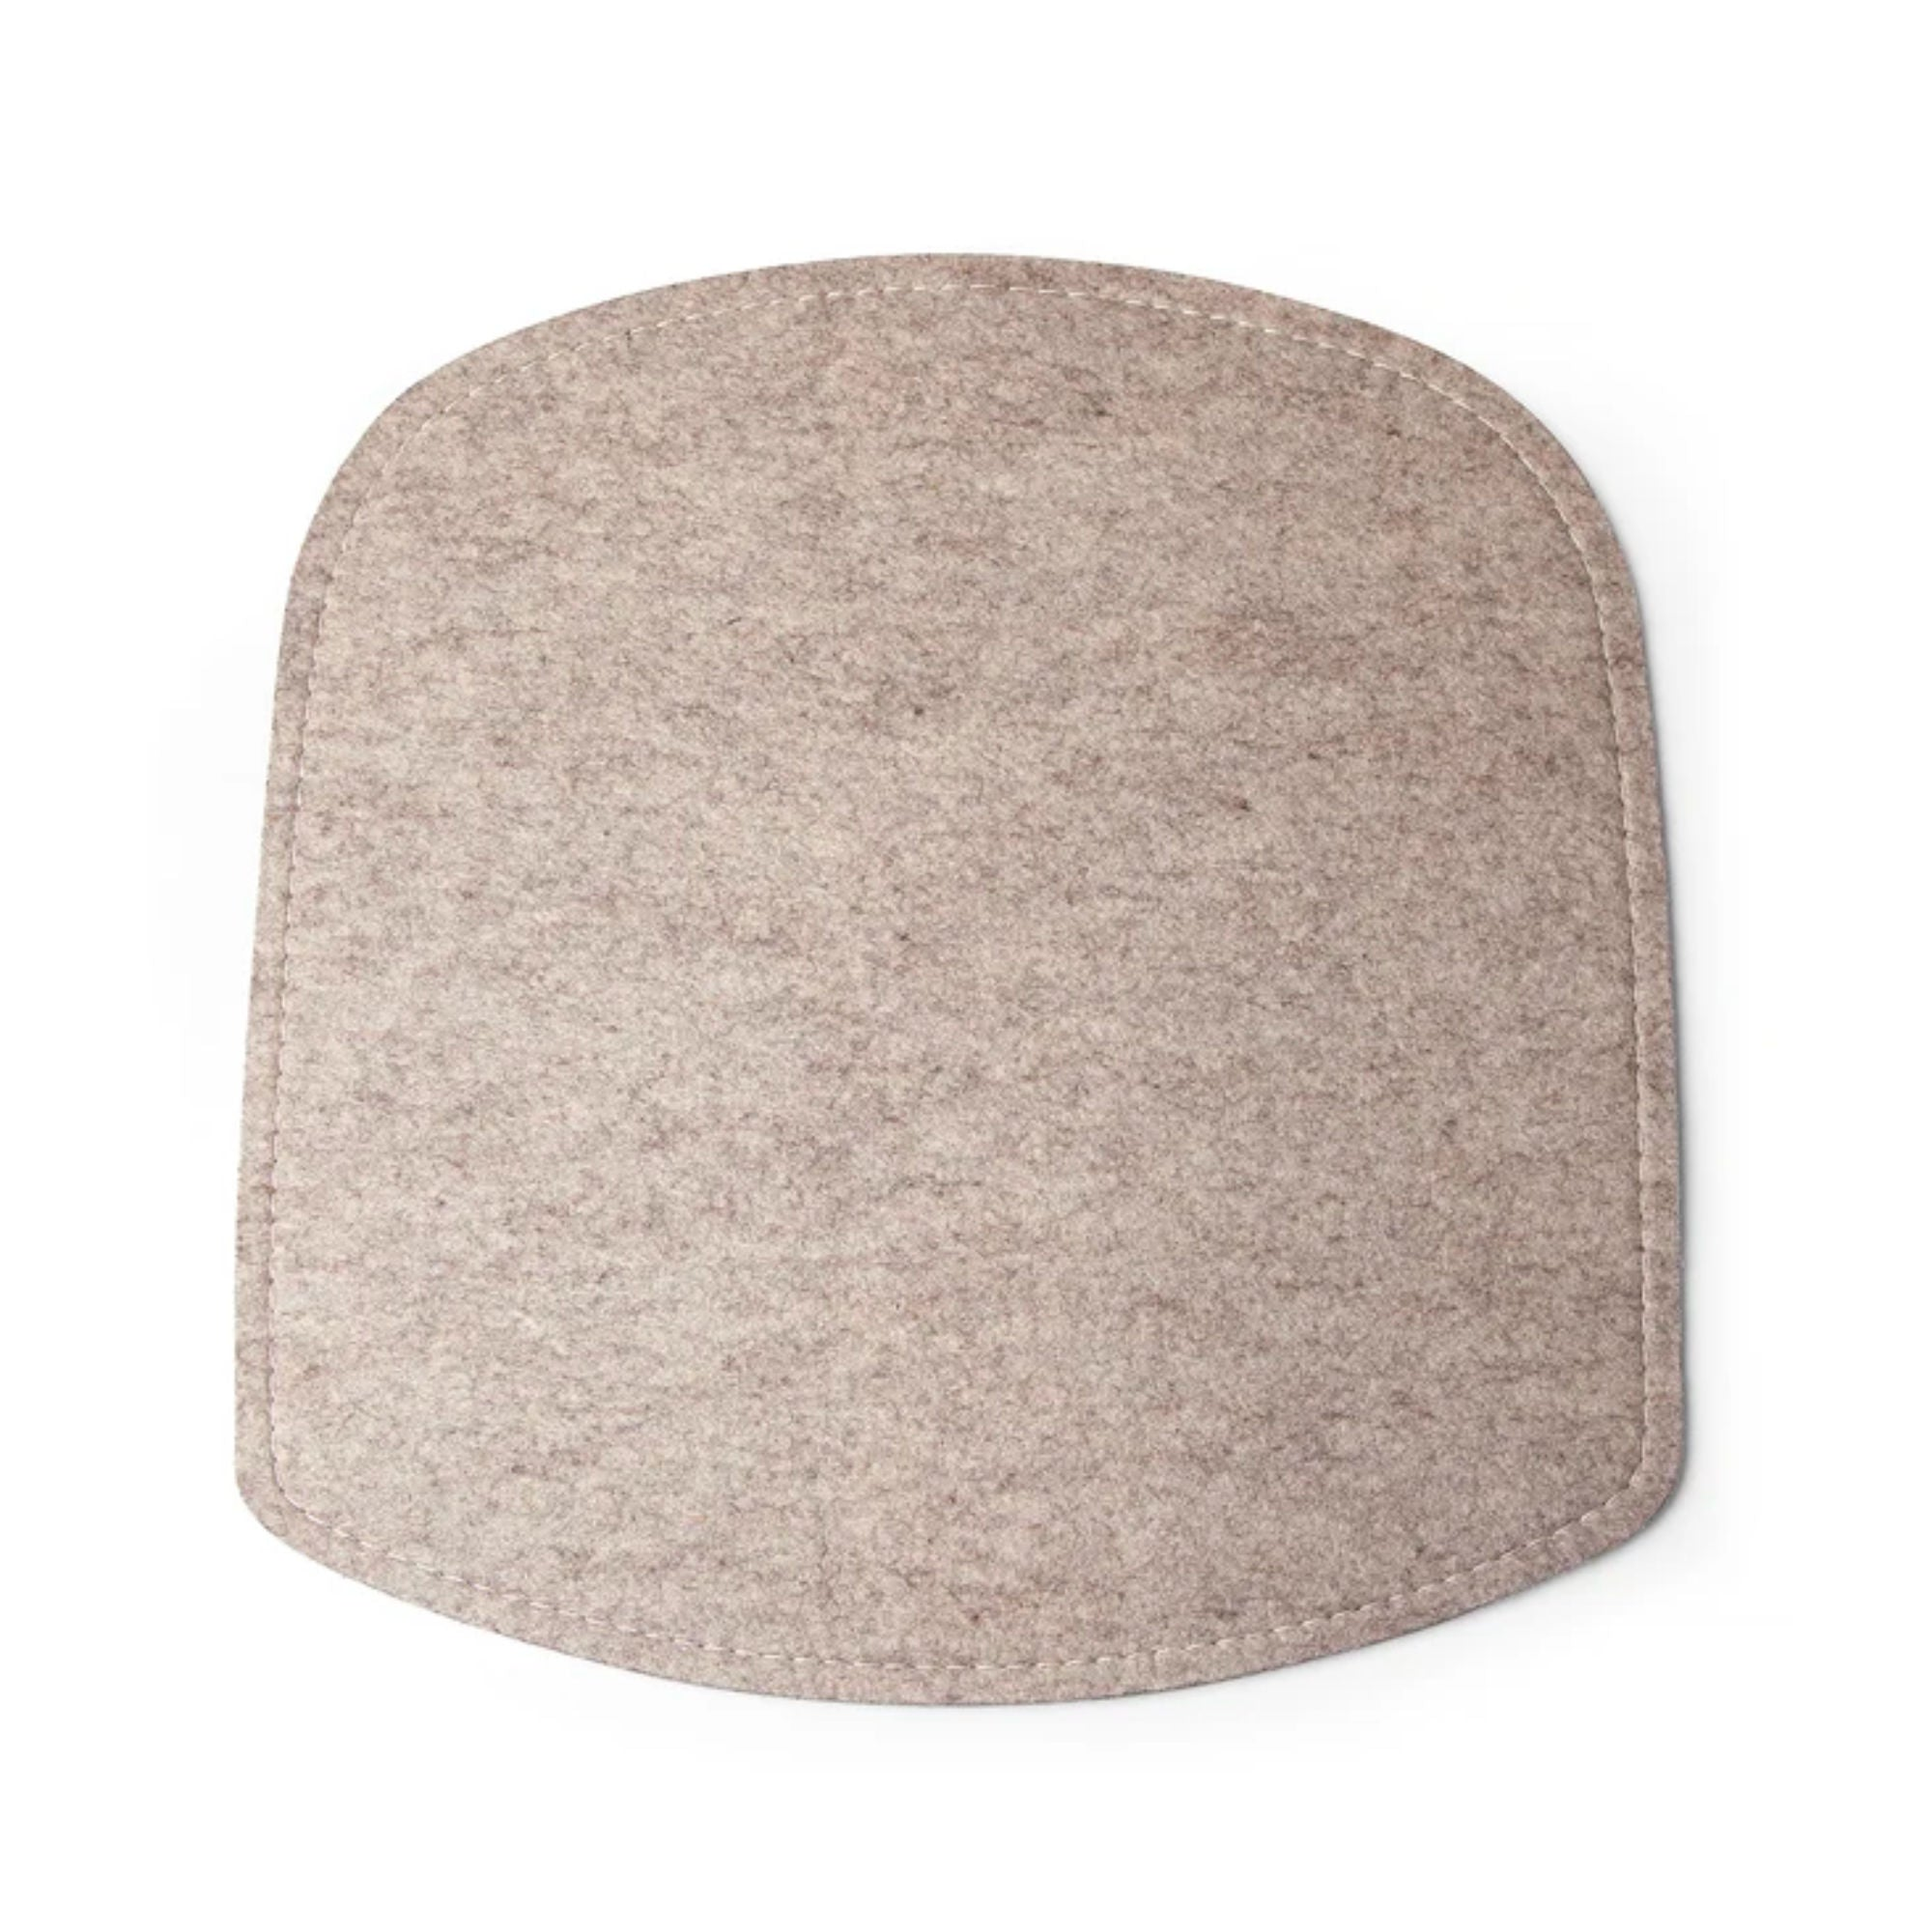 Design House Stockholm Wick Felt Chair Cushion , Beige